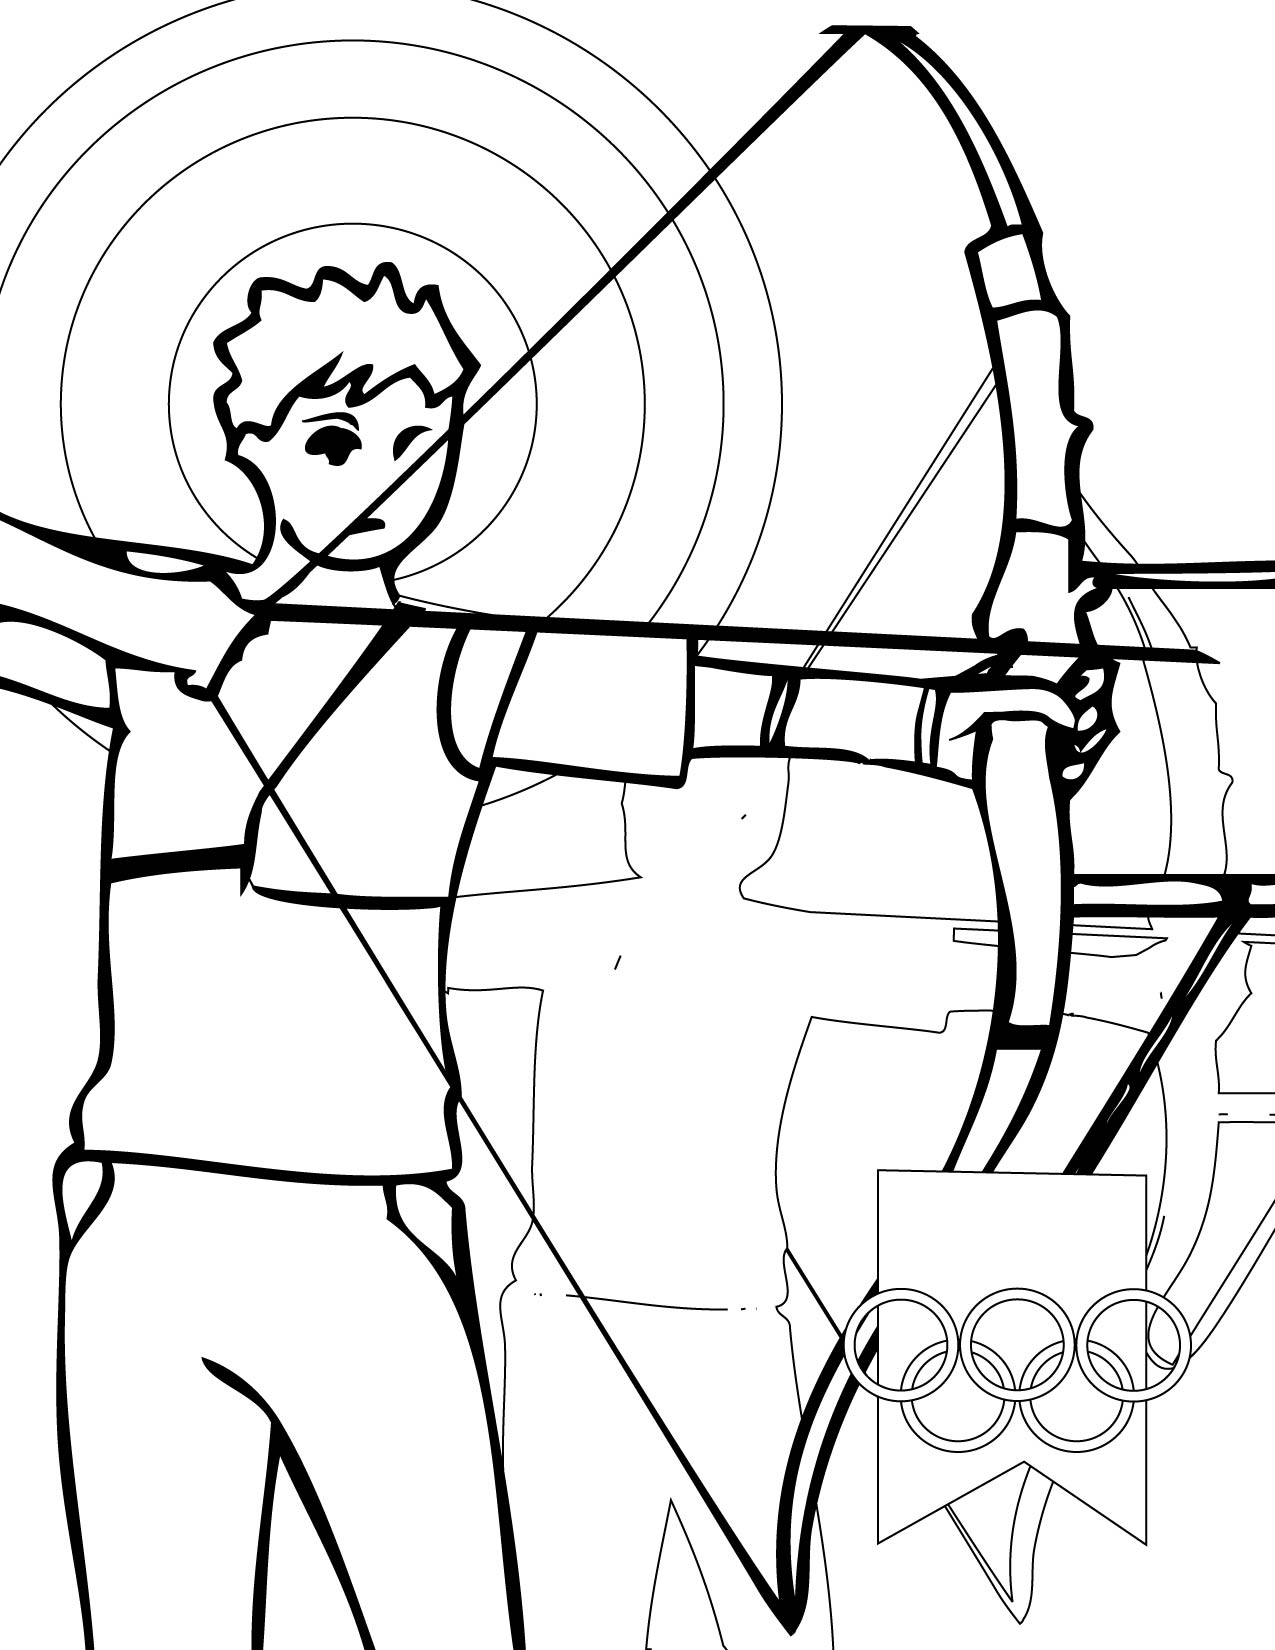 1275x1650 Sports Coloring Pages Archery